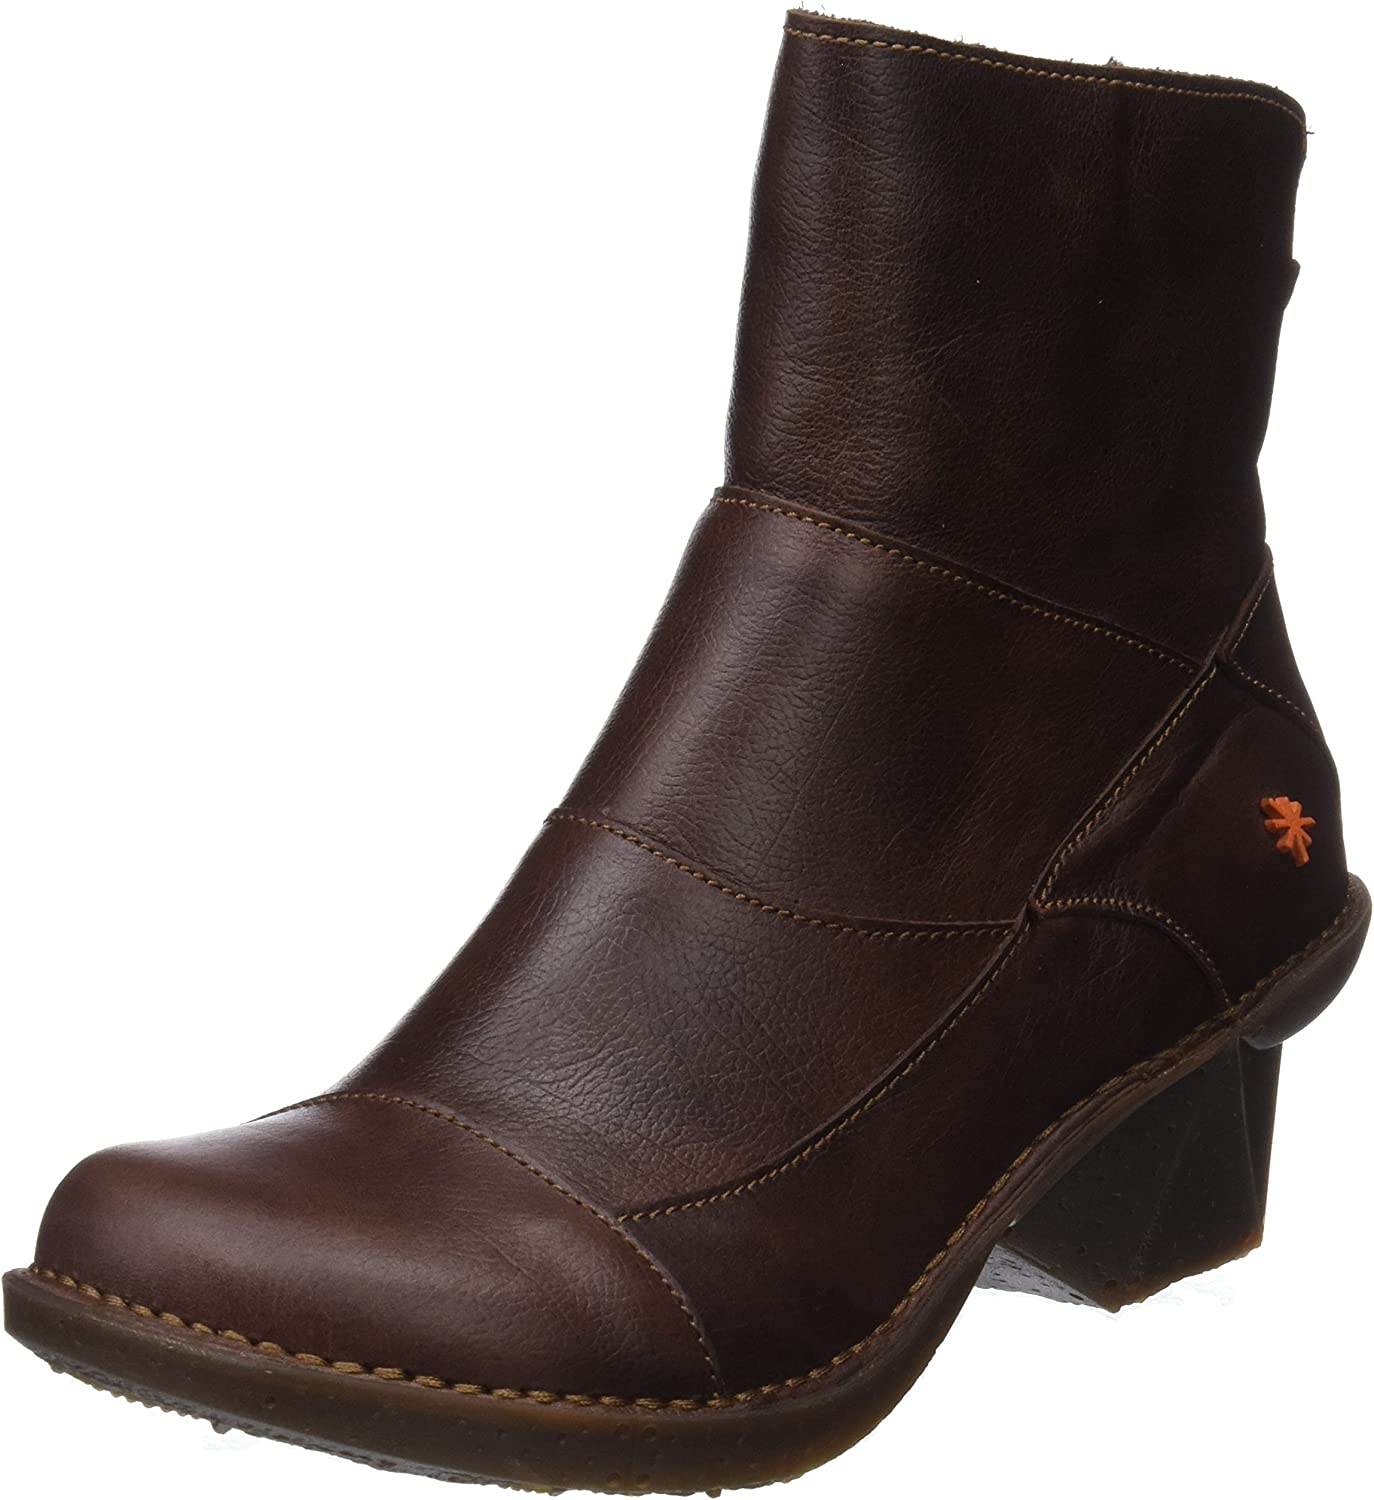 Art Womens 0621 Oteiza Brown Leather Boots 40 EU